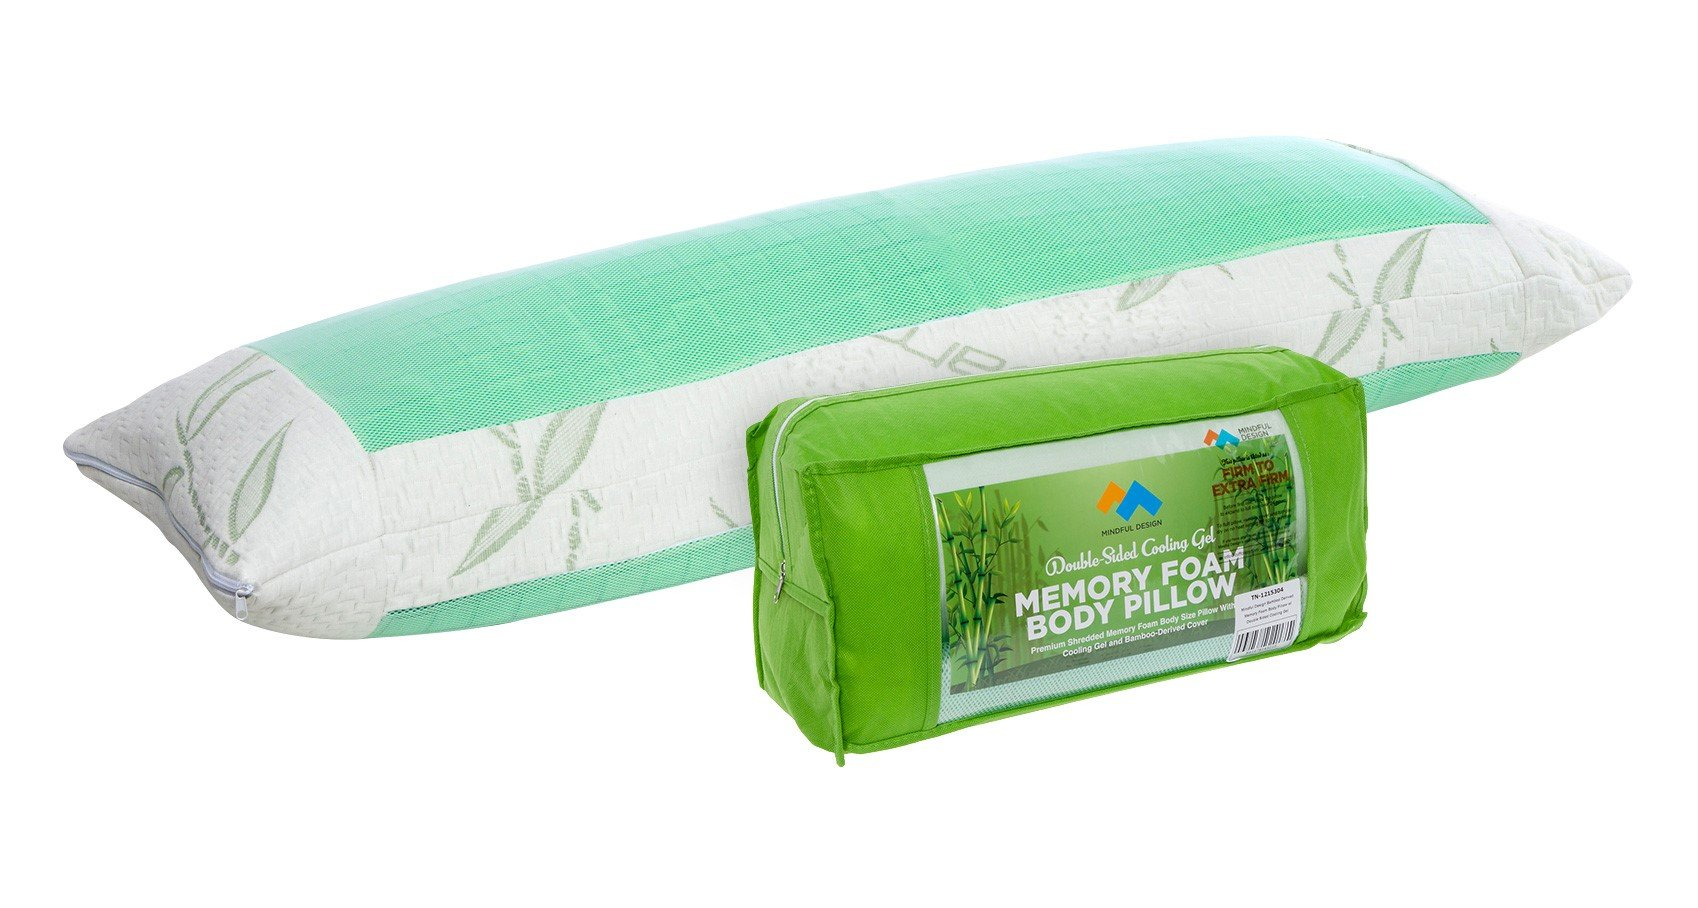 Mindful Design Double Sided Cooling Body Pillow - Firm w/Bamboo Derived Cover